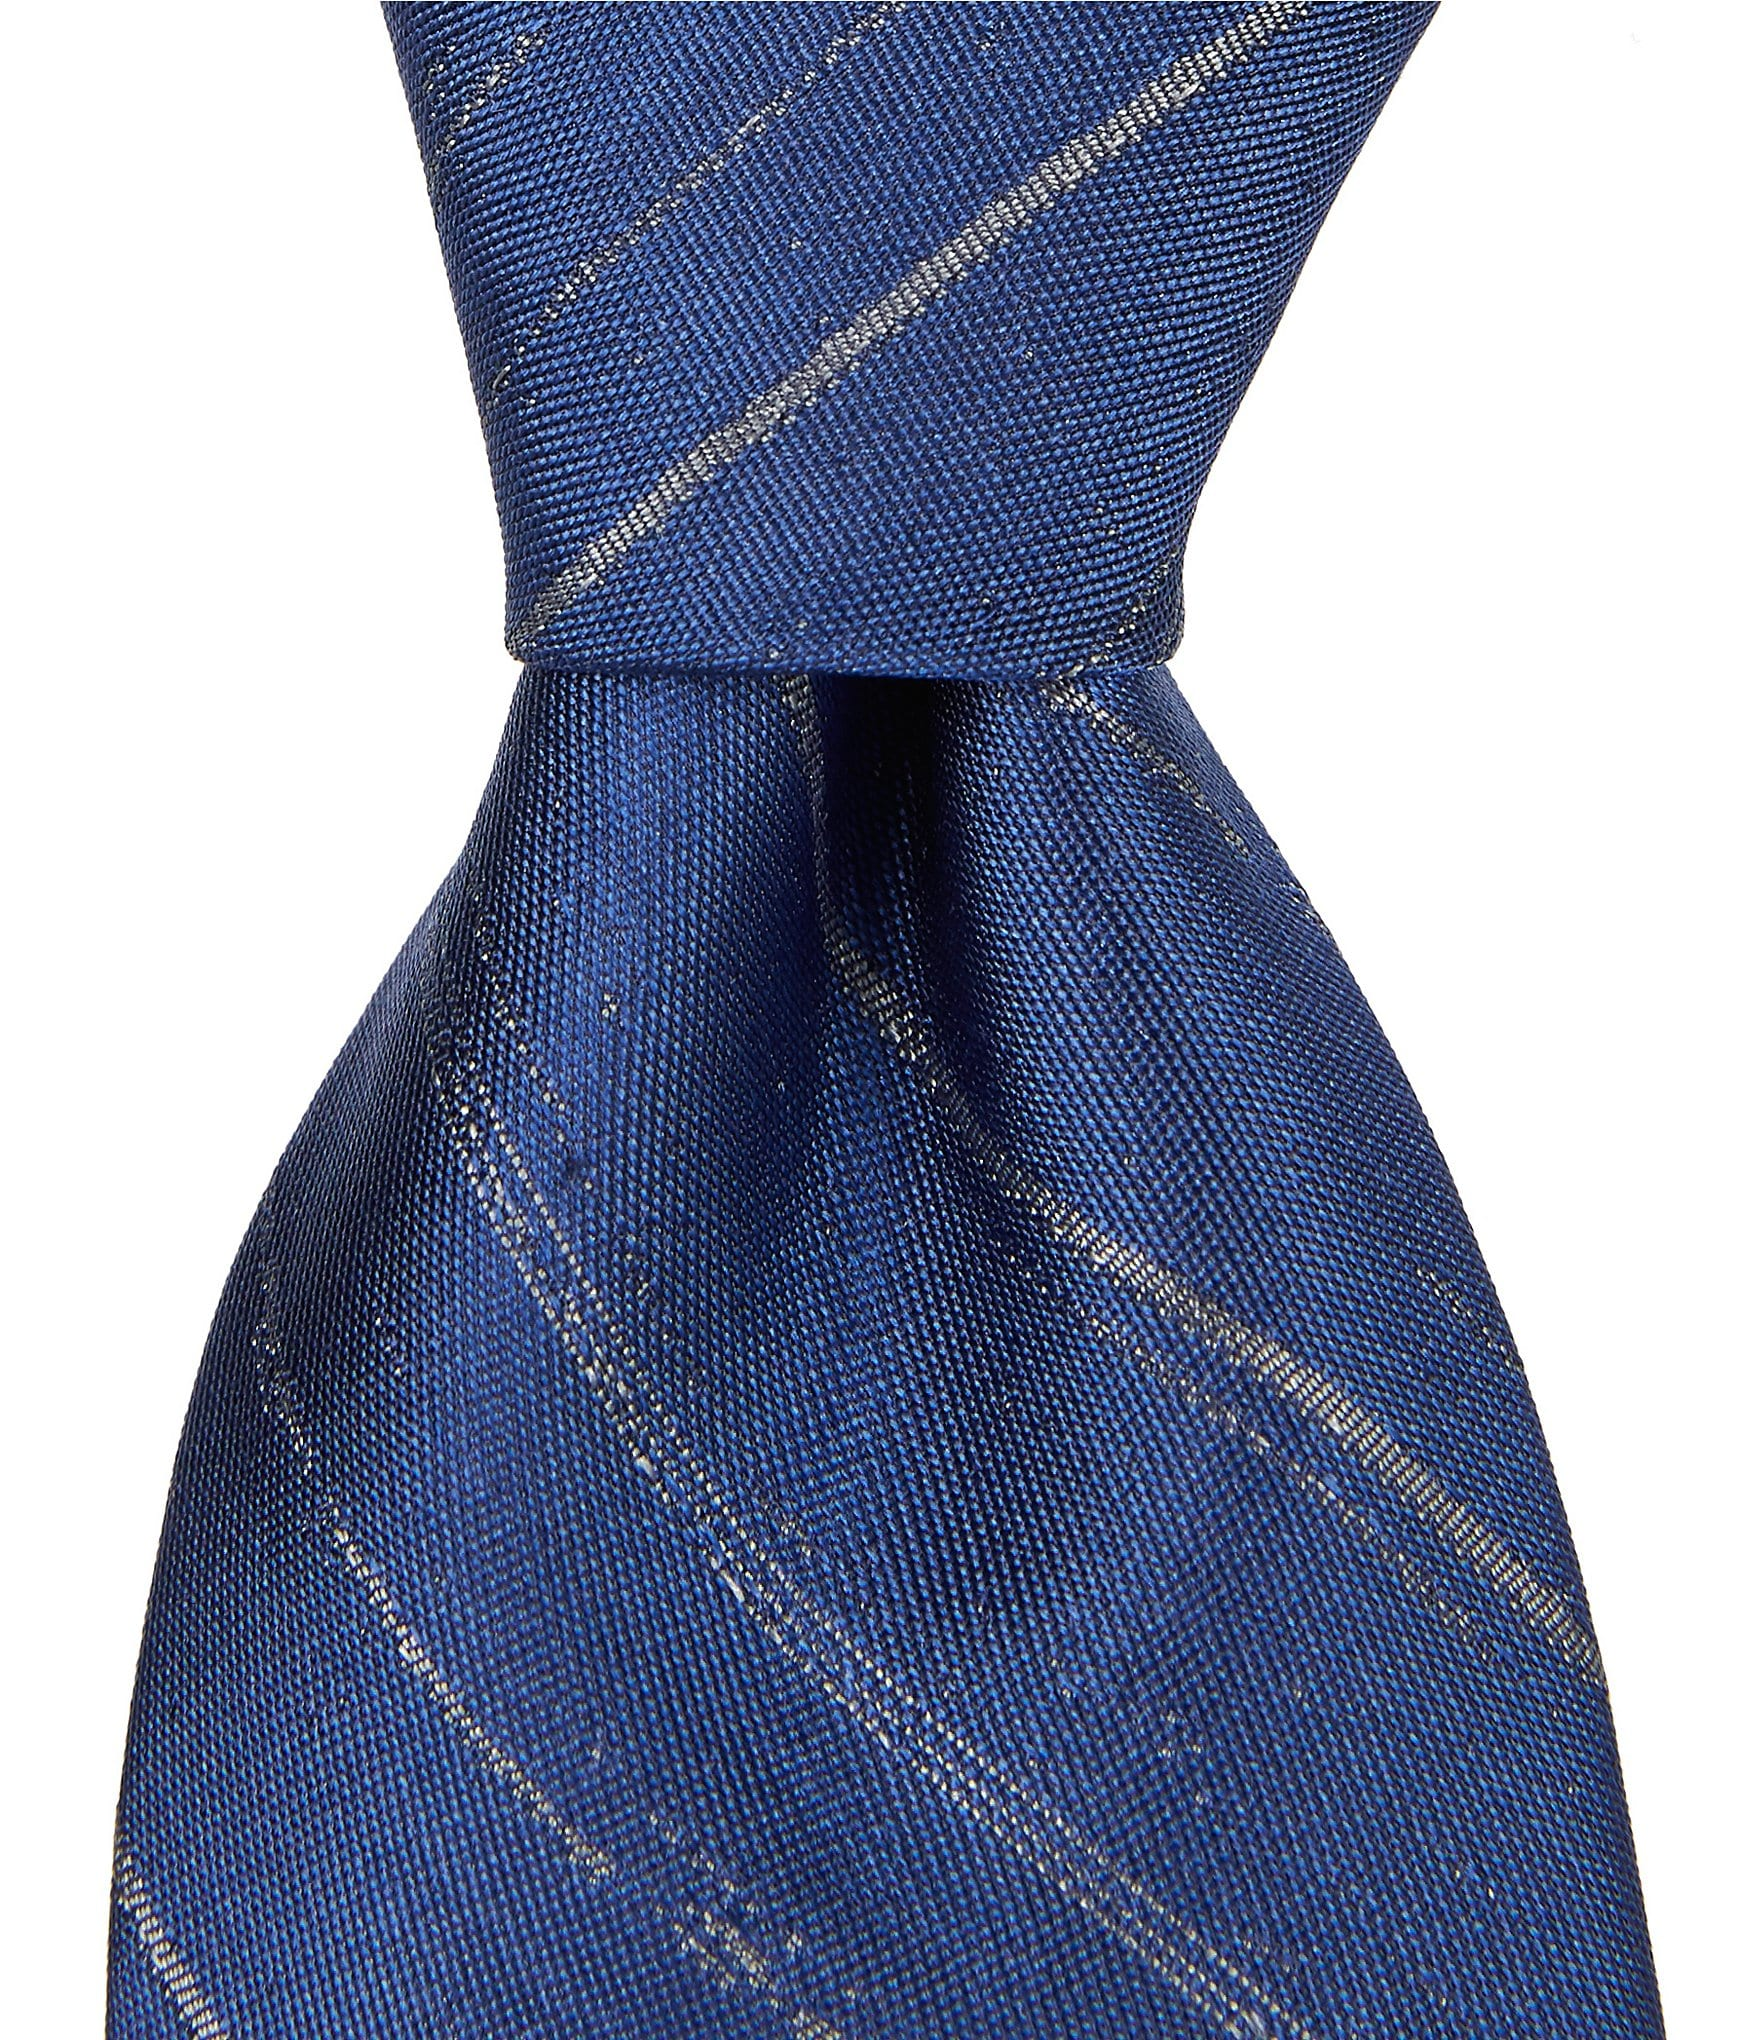 Murano Mens Ties Bow Pocket Squares Dillards How To Tie A Knot With Silk